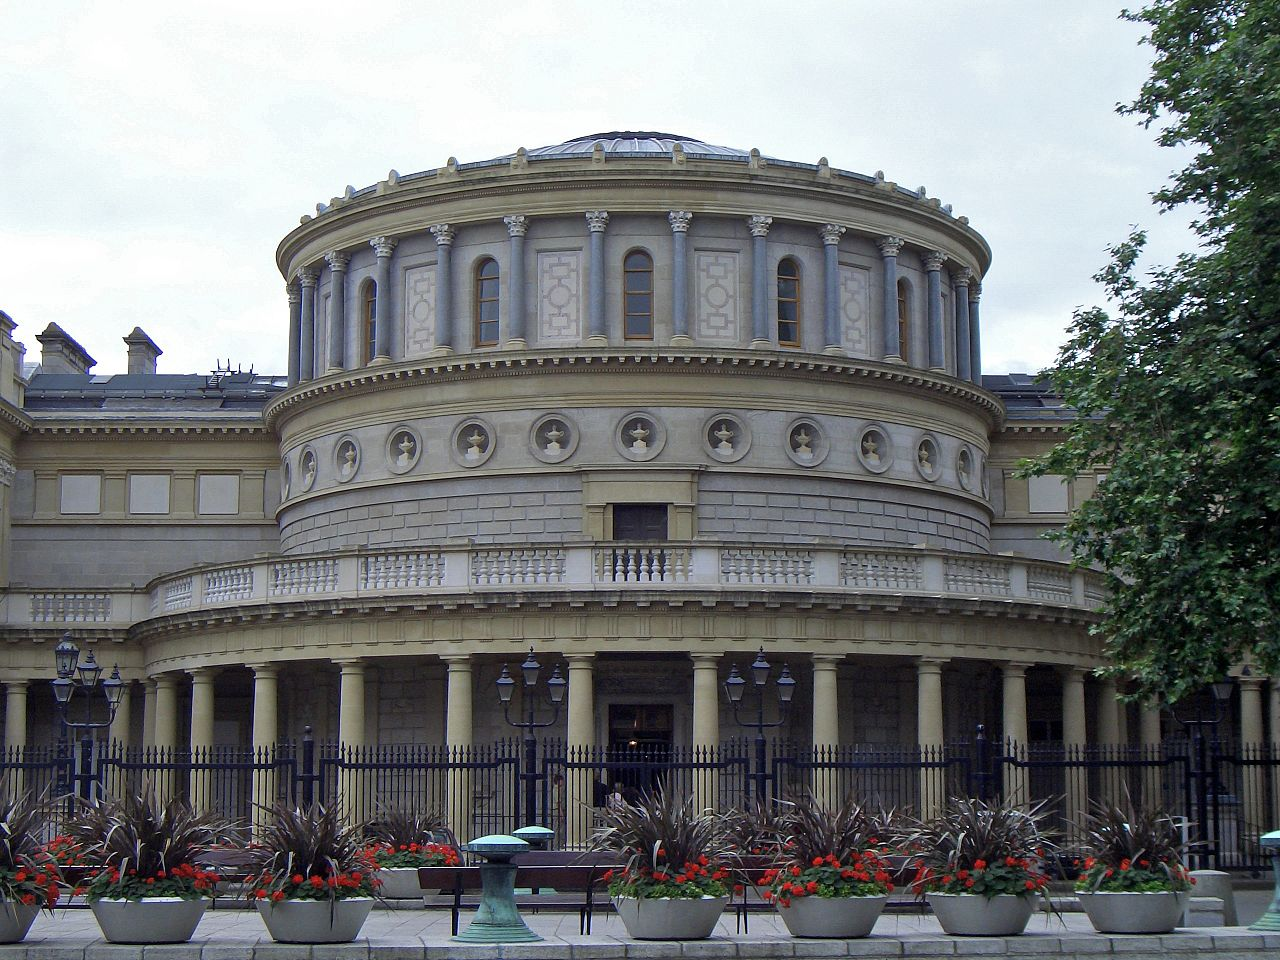 National Museum of Ireland, Dublin